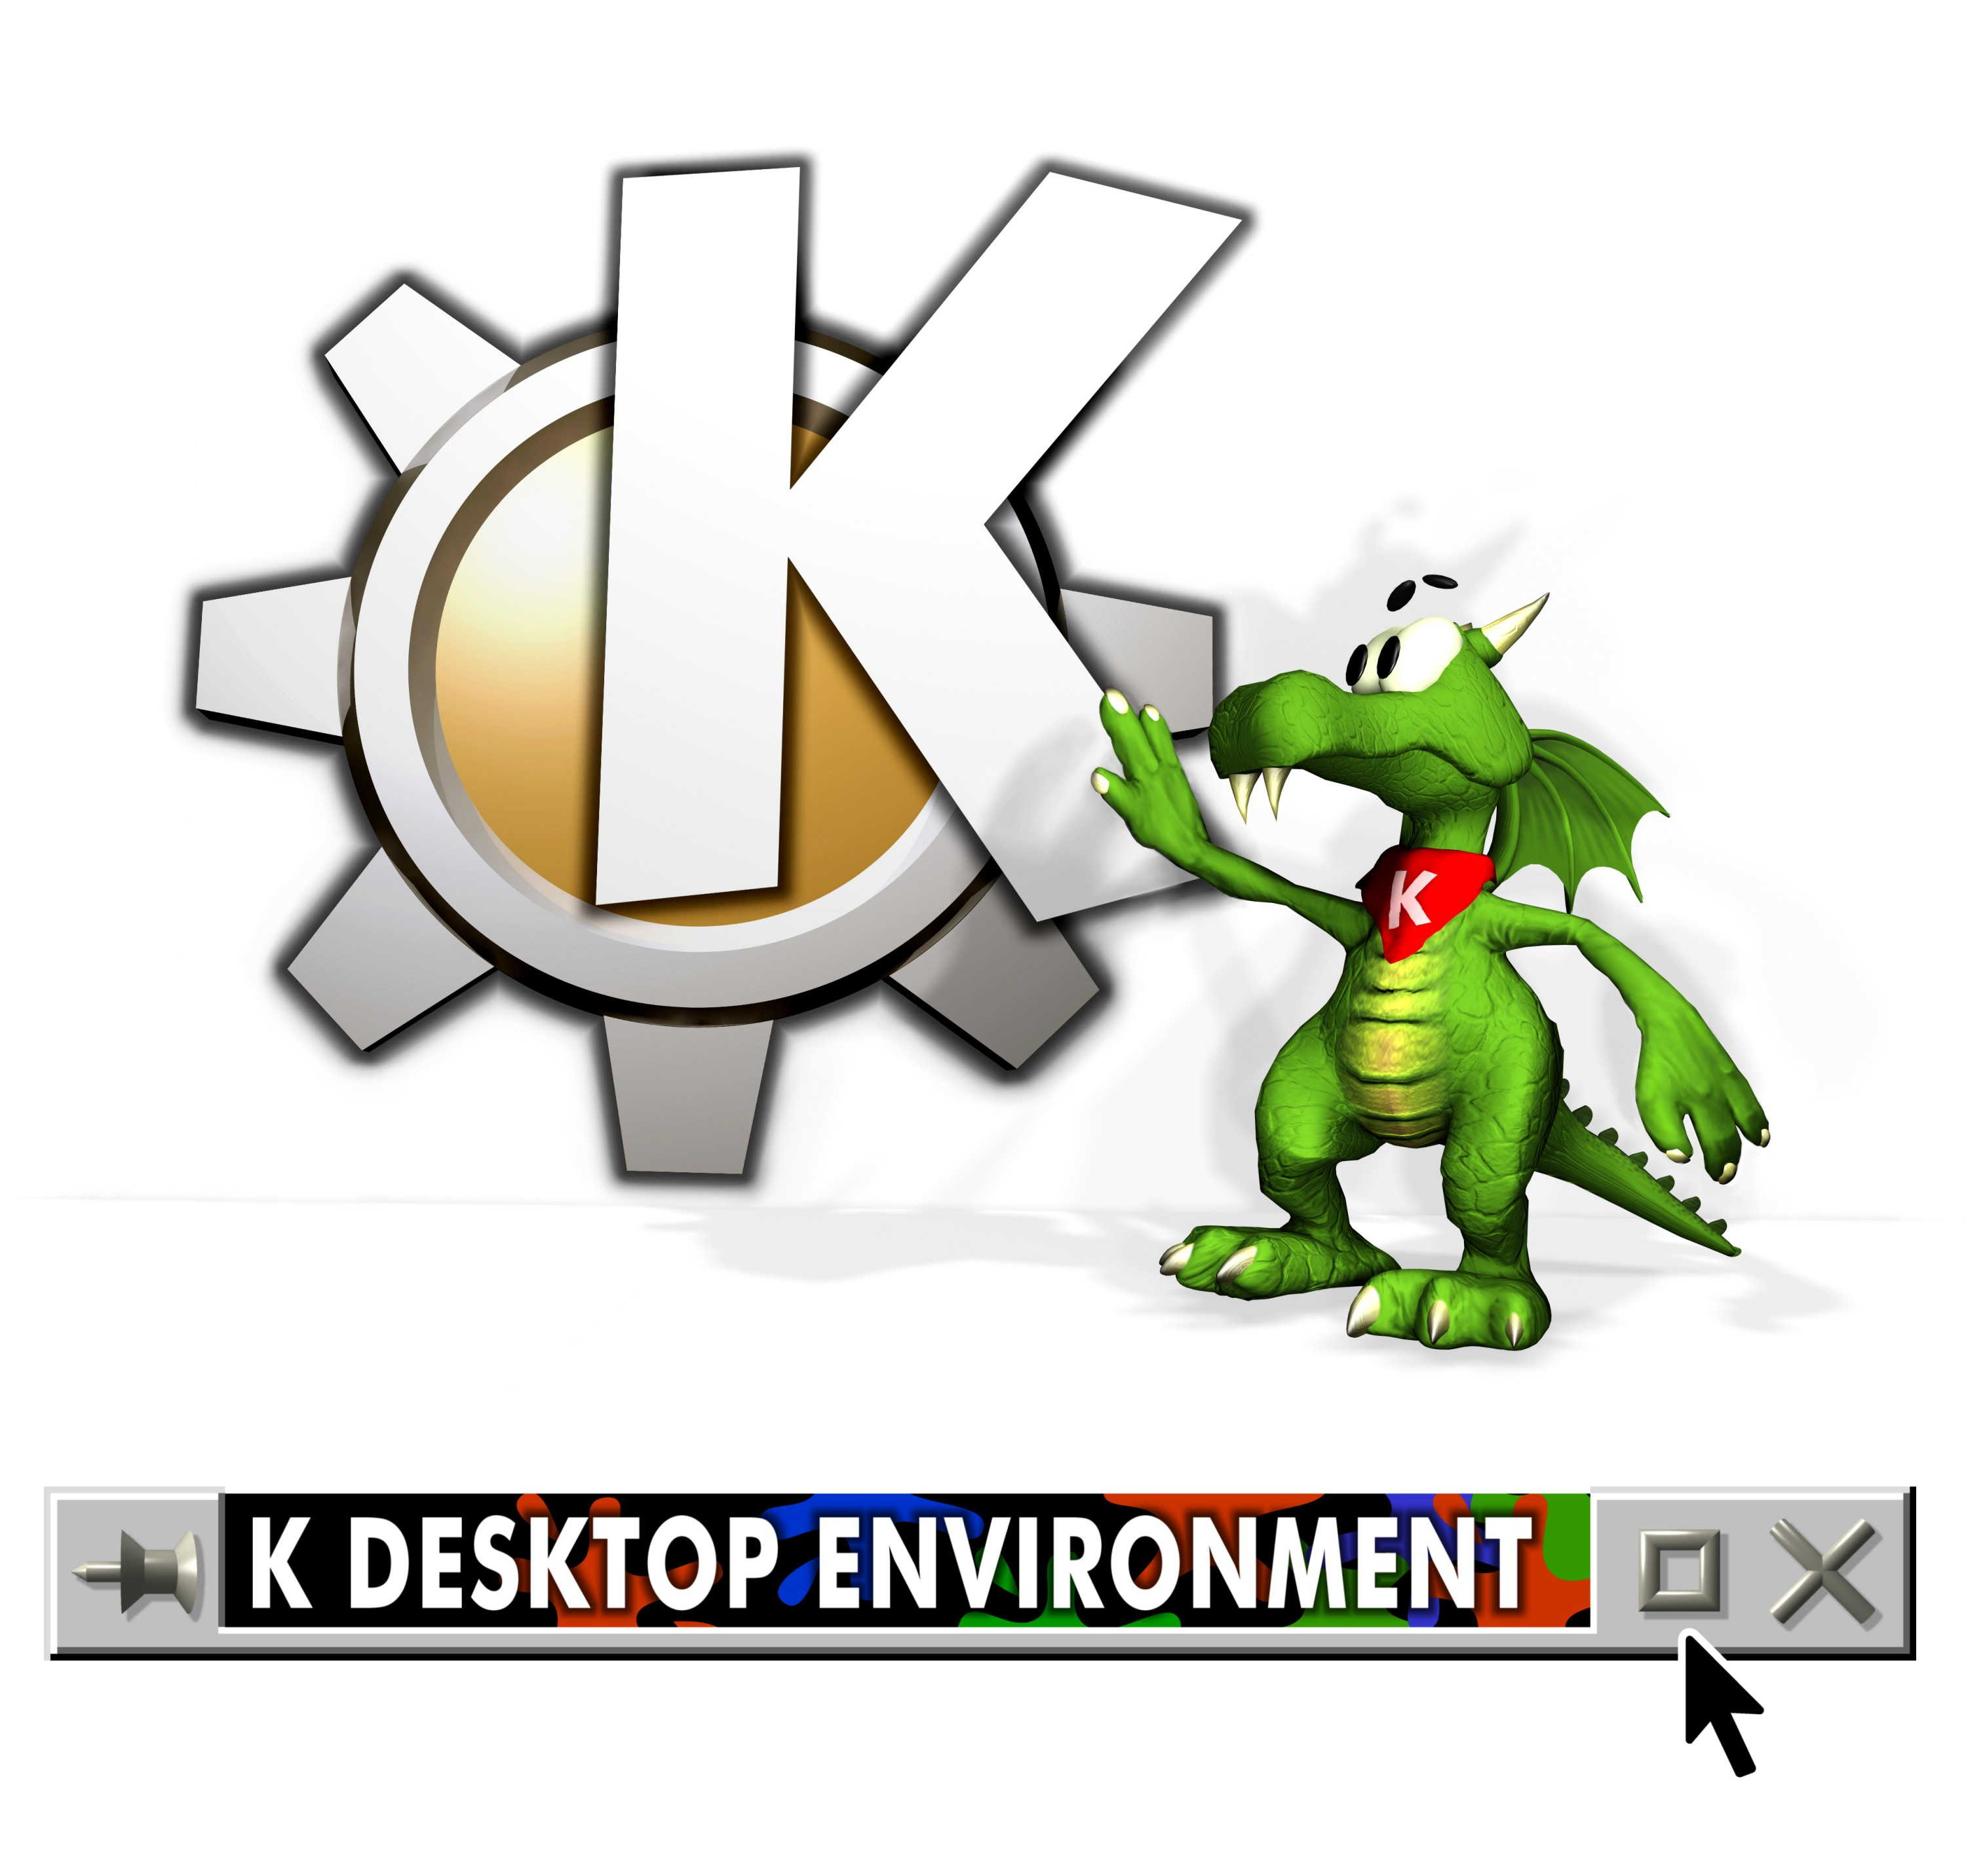 Directory Listing for: /home/ftp/pub/kde/unstable/icons